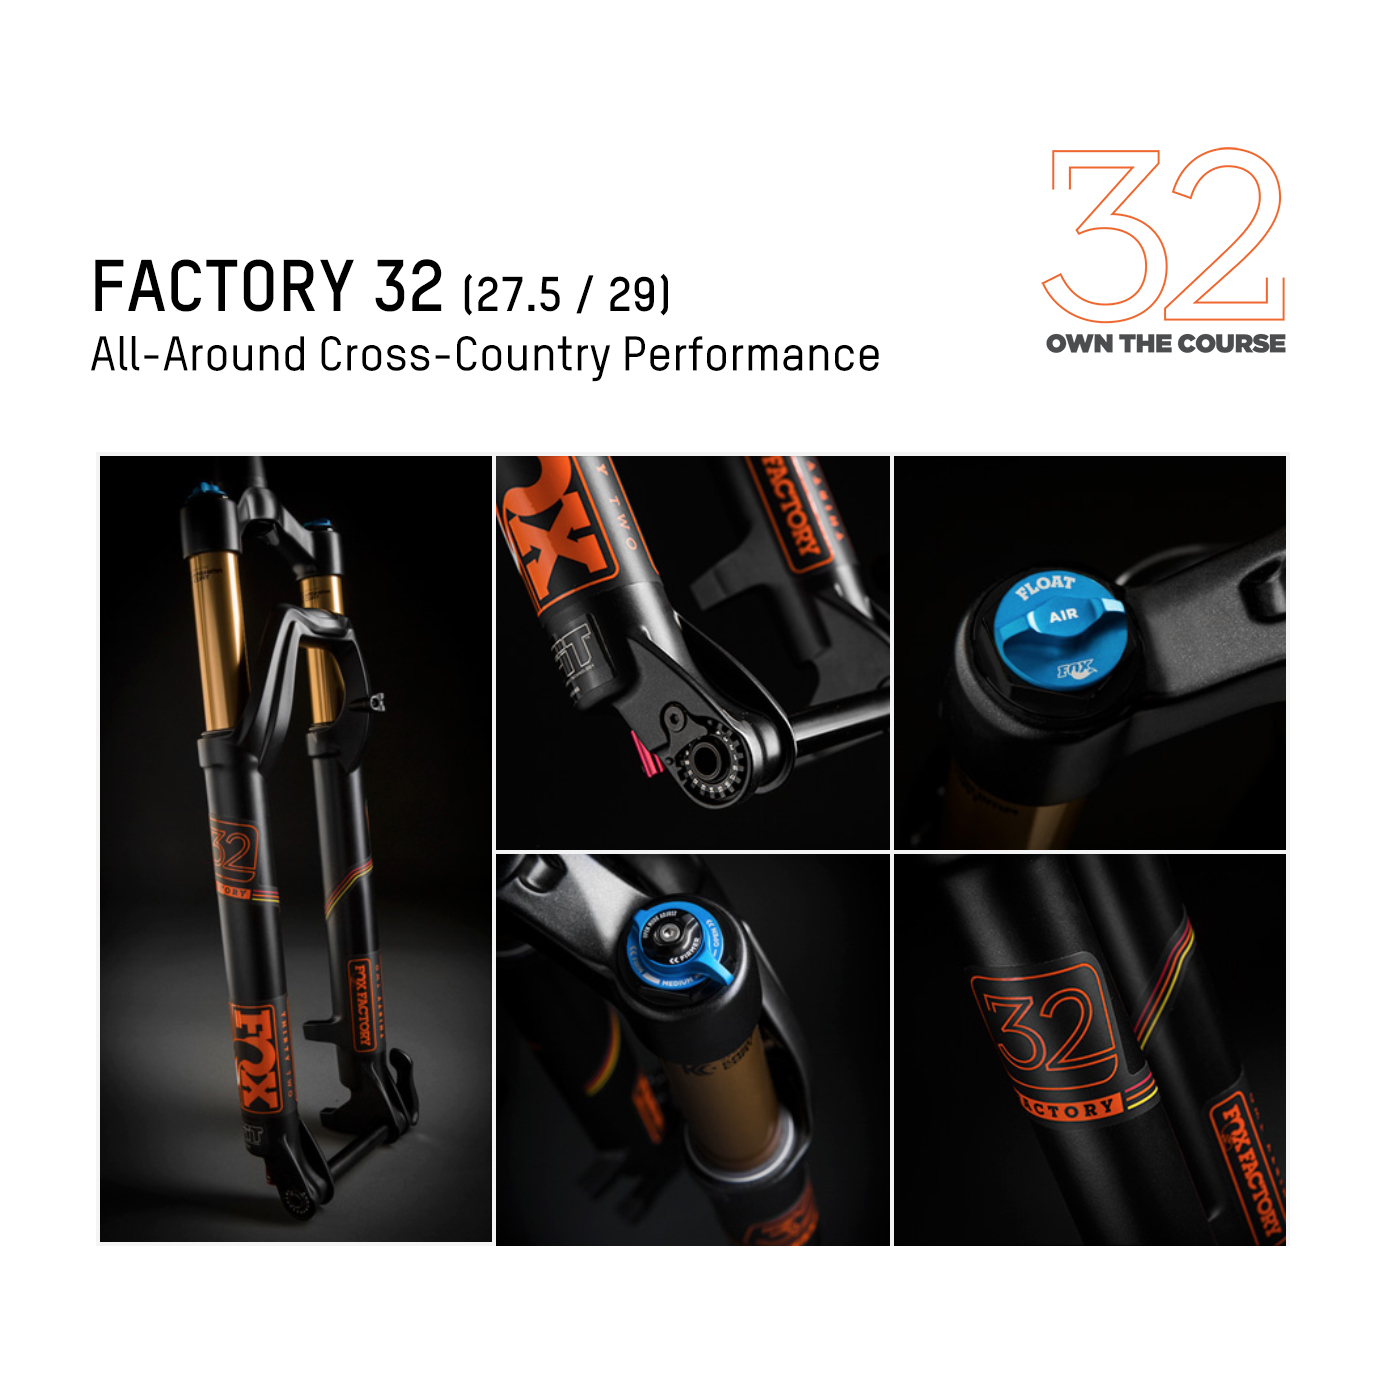 FOX  รุ่น Factory 32 (All-Around Cross-Country Performance)